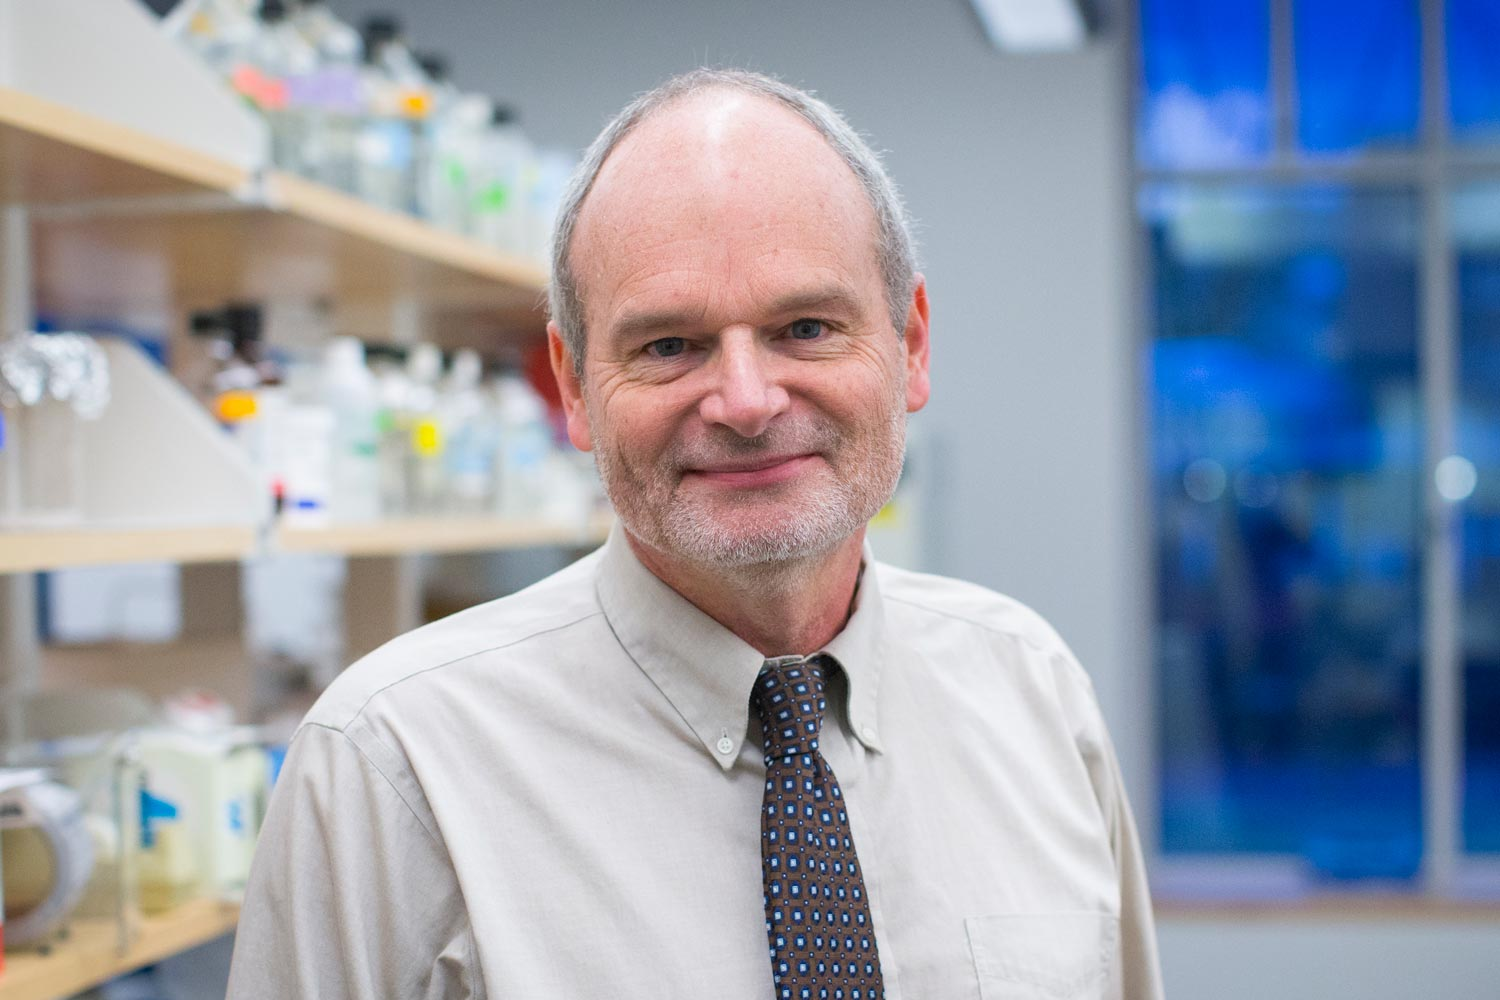 Dr. Bill Petri is chief of UVA's Division of Infectious Diseases. (Photo by Sanjay Suchak, University Communications)